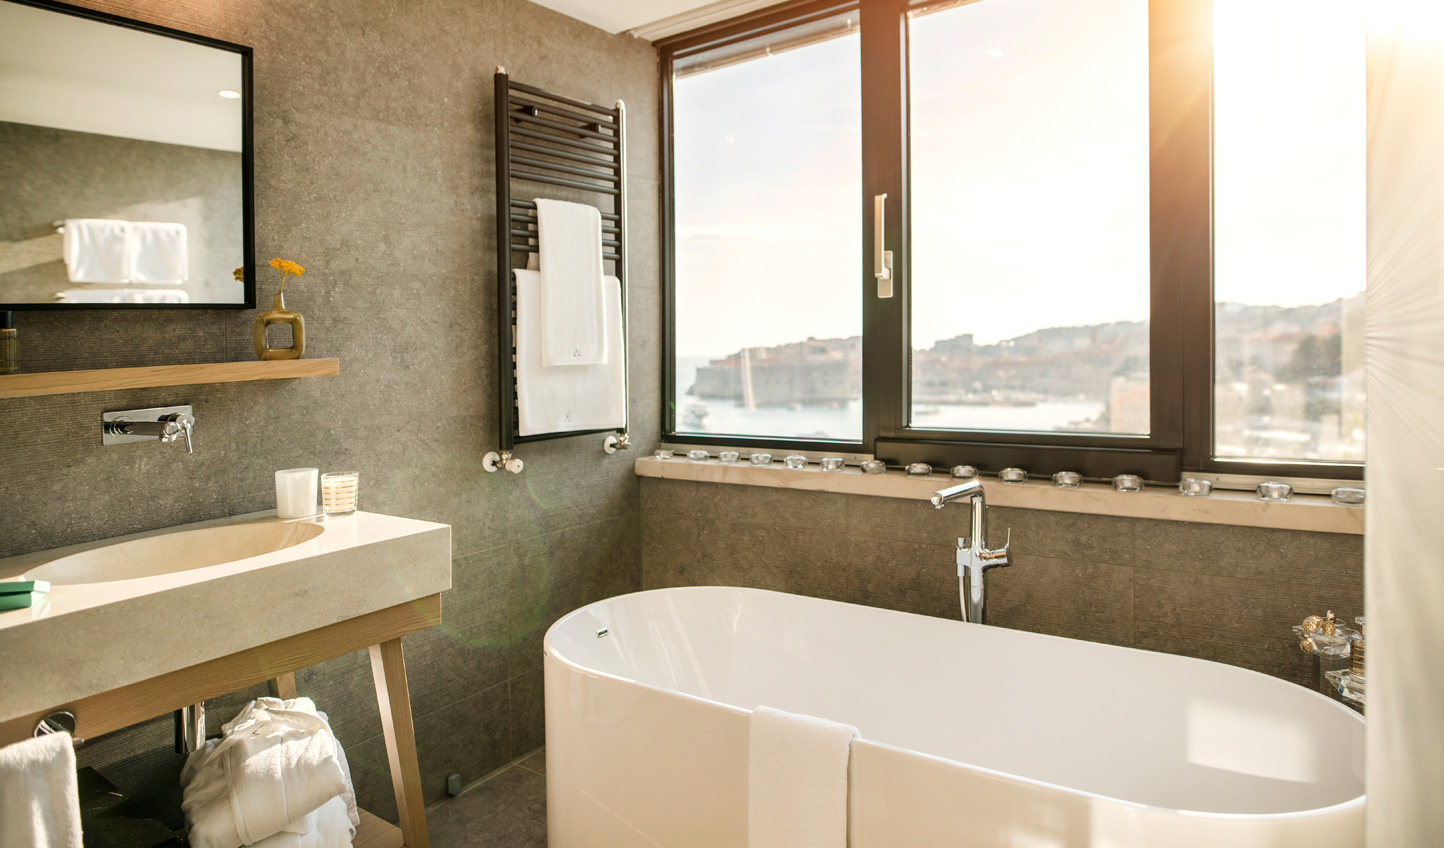 Modern luxury on the cusp of the old world of Dubrovnik